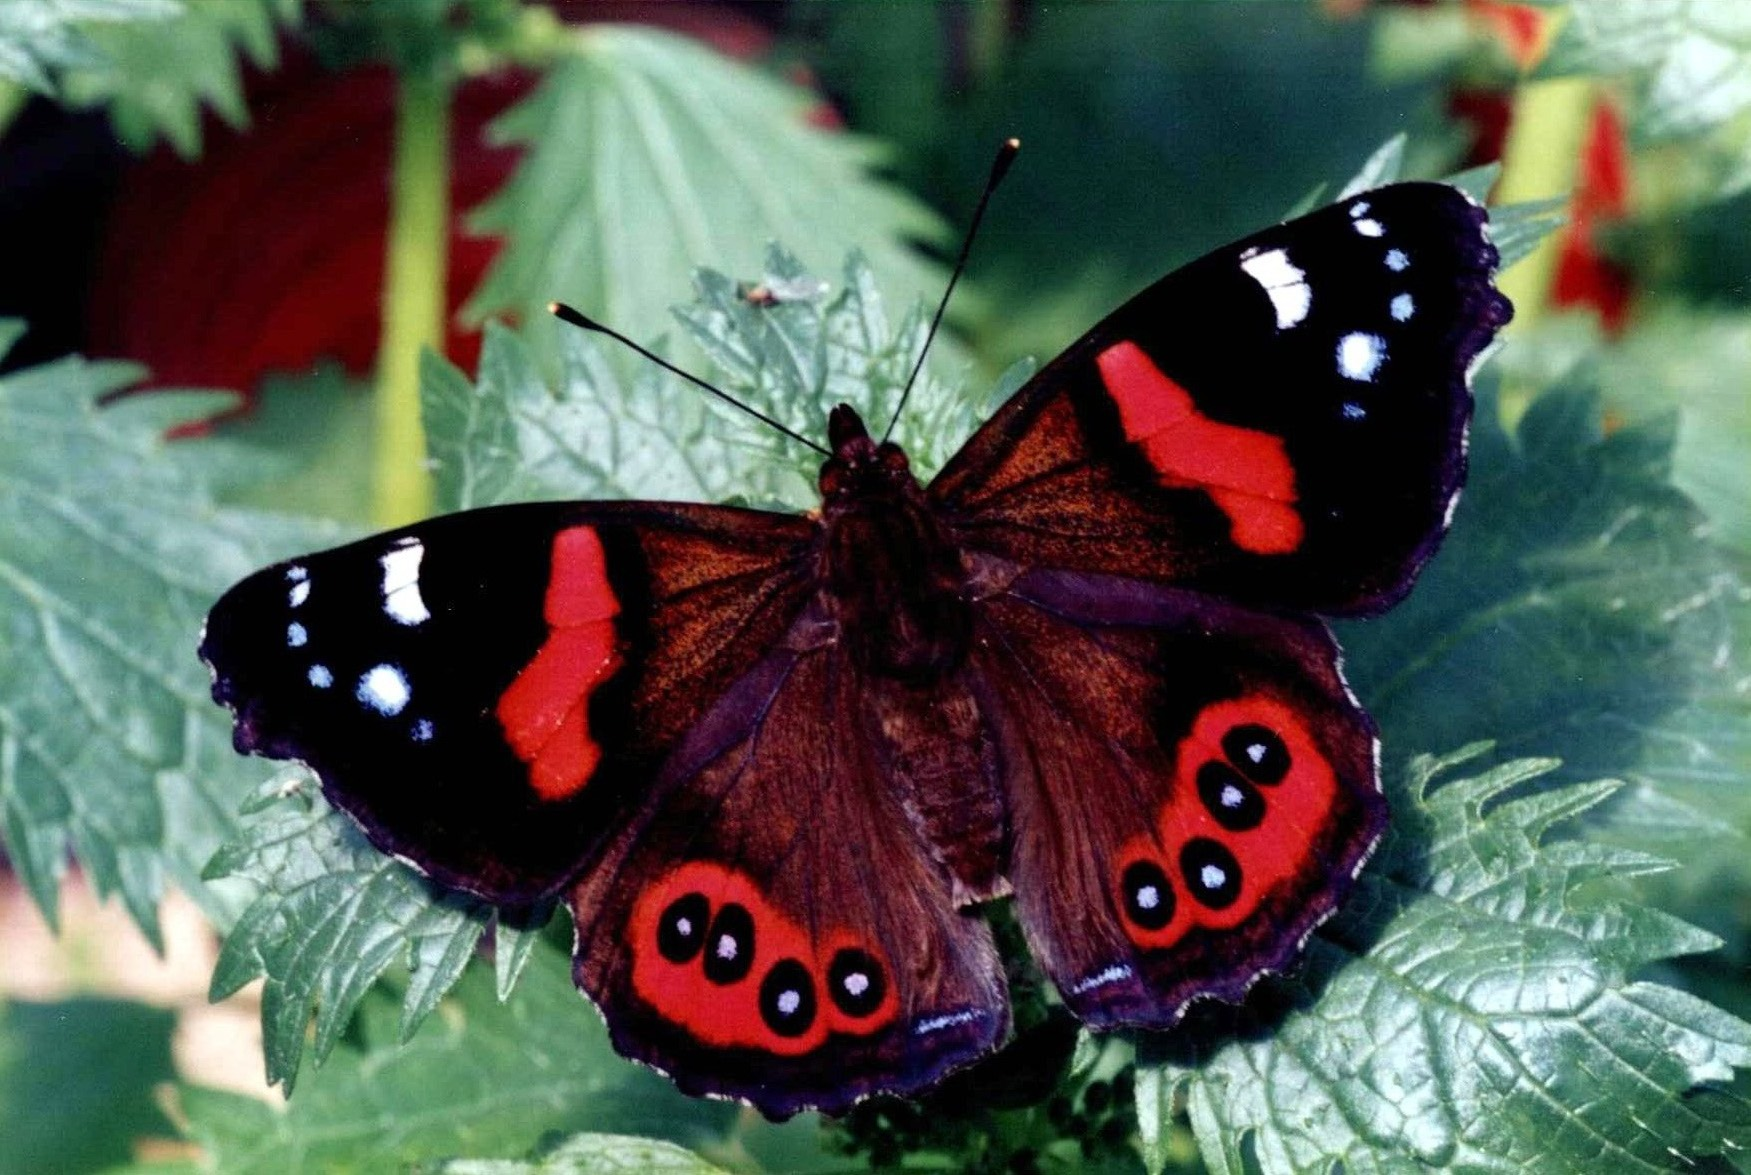 https://i0.wp.com/www.monarch.org.nz/monarch/wp-content/uploads/2009/02/red-admiral.jpg